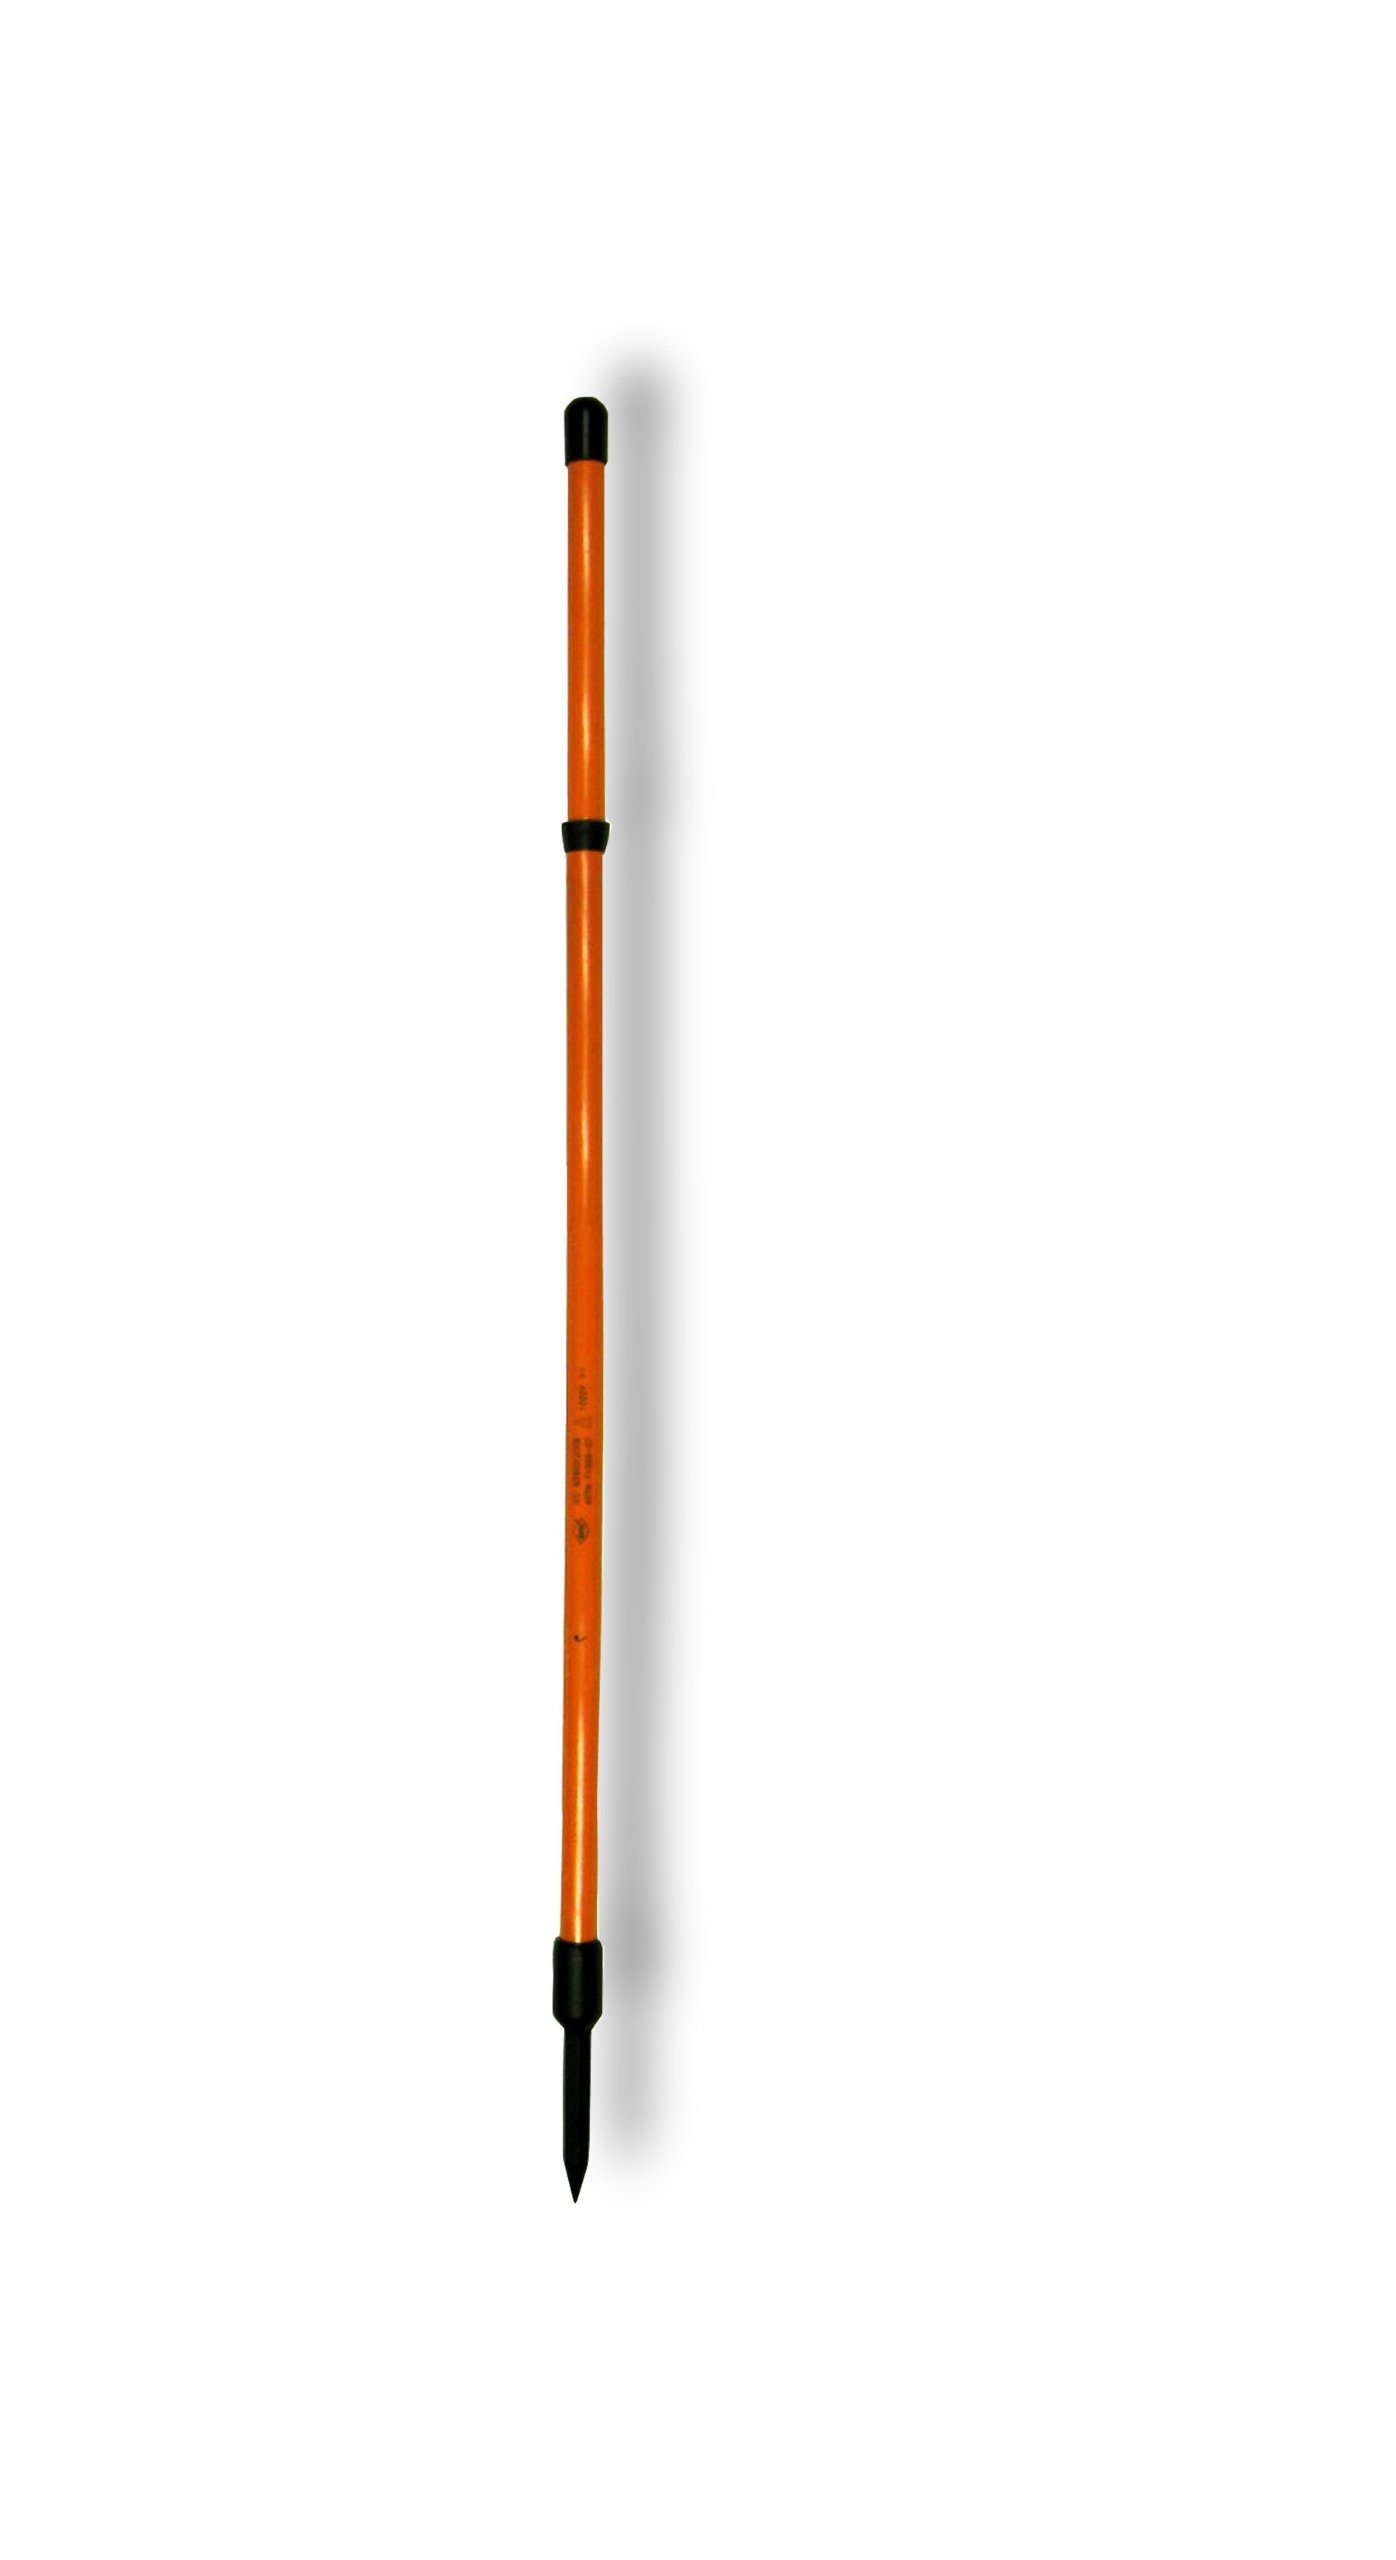 Nupla NC-DBP6 Digging Bar with Solid Handle and EC Grip, 72'' Handle Length by Nupla